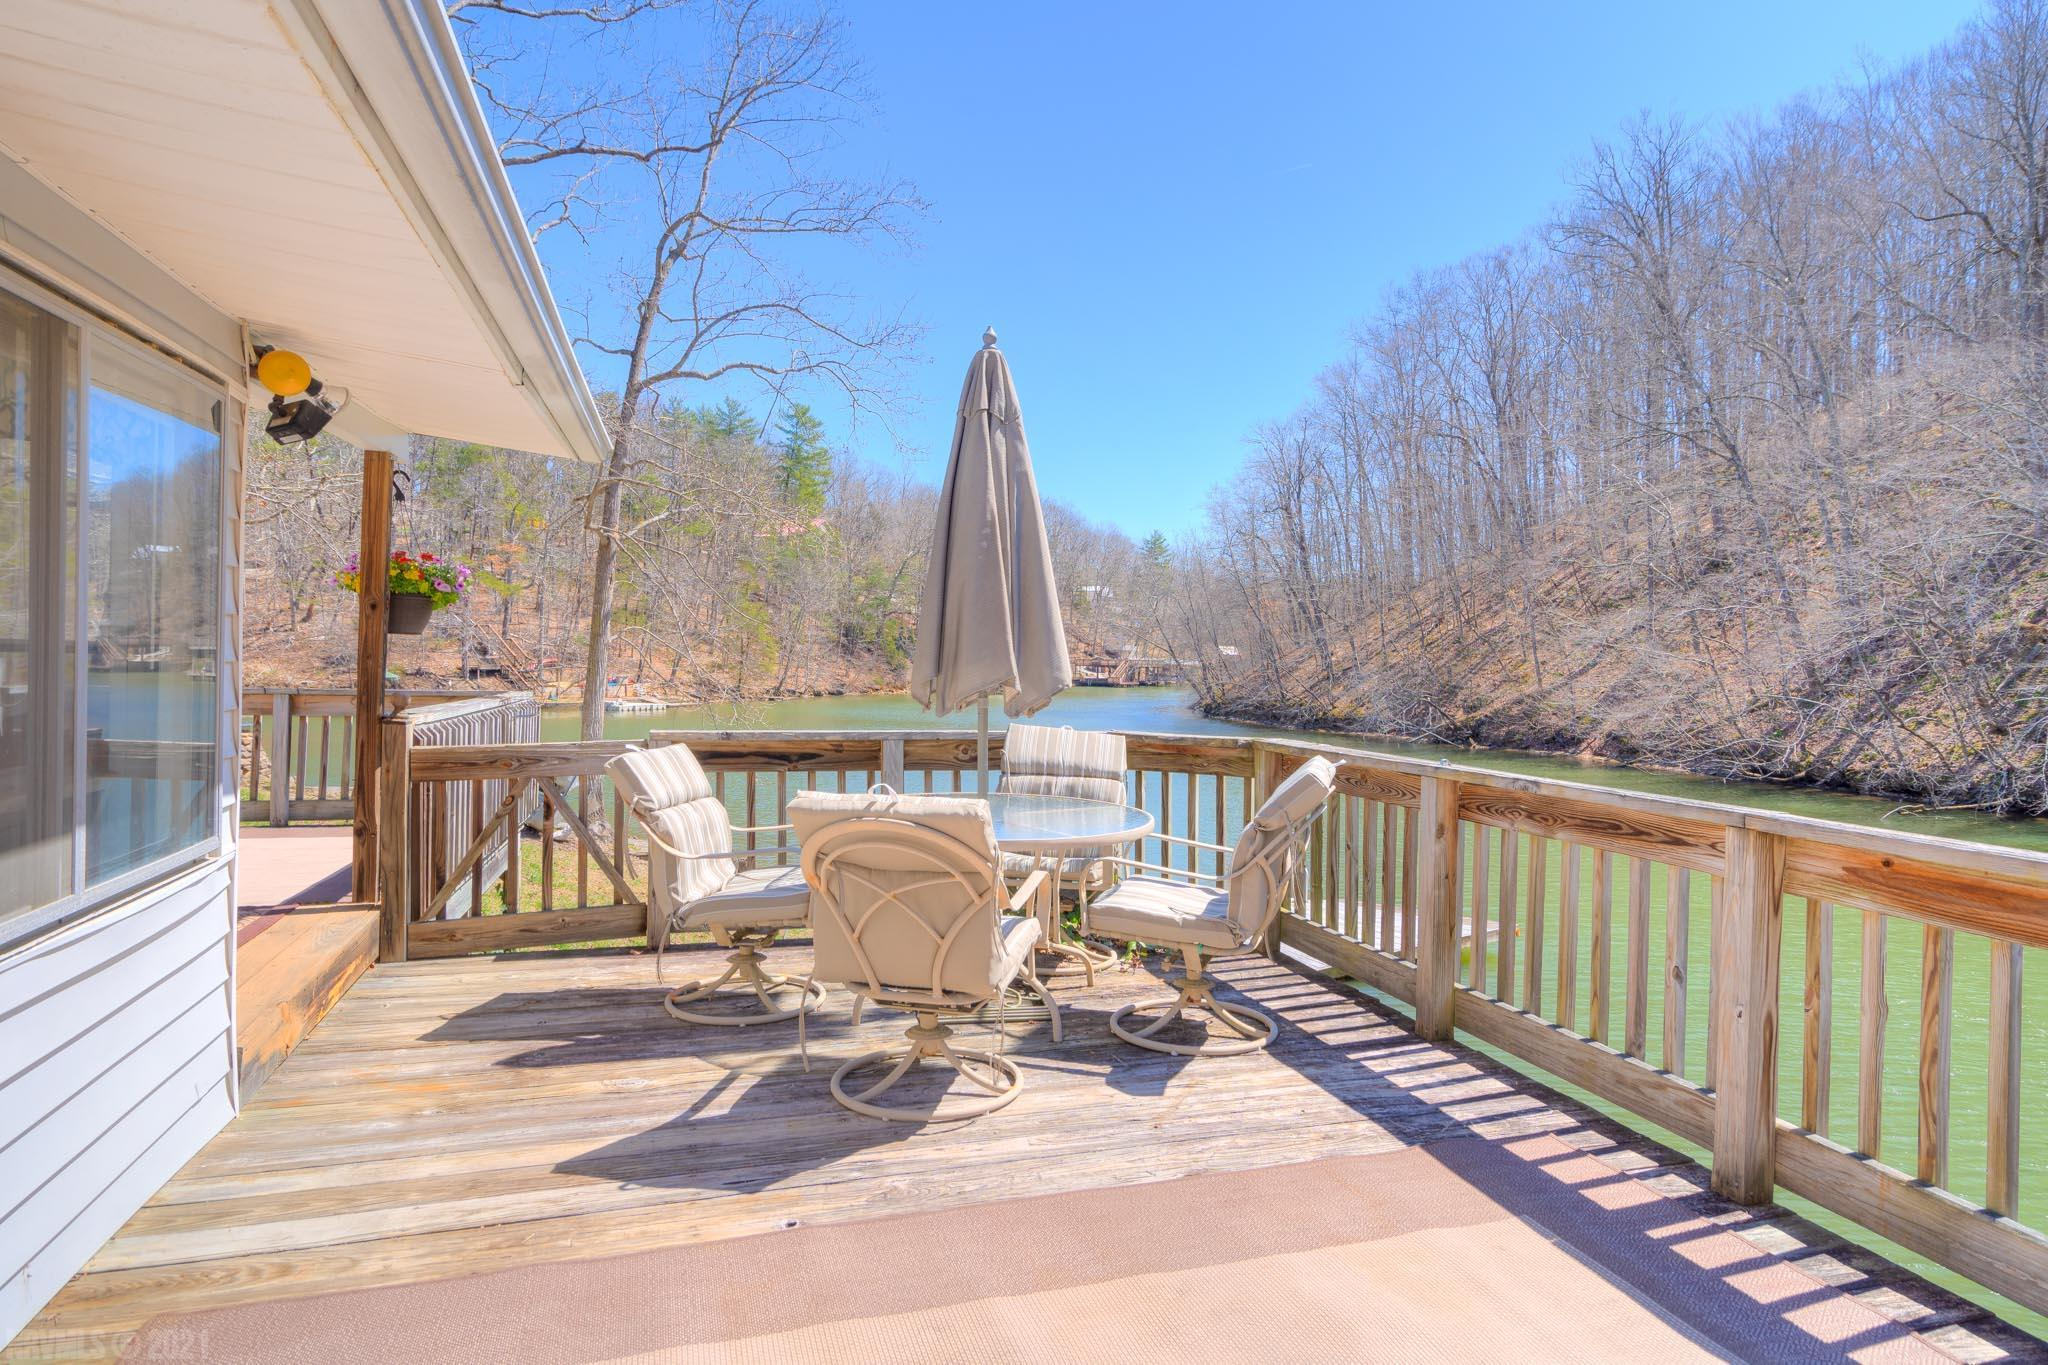 This home is a vacation lover's delight! Relaxing on your massive deck, enjoying Claytor Lake's water views and nature at its best, makes every day a vacation day! The living/dining room boosts a wall of windows bringing the outdoors in and maximizing the lakefront location. A light and bright kitchen offers lots of work and storage space and the bedrooms are nicely sized. The floating dock is the perfect spot for your boat with a 12' water depth near the dock and the private boardwalk is ideal for fishing. Beautiful 100 feet of secluded waterfront makes this an ultimate vacation home. Once you experience the tranquil water views you won't want to leave!